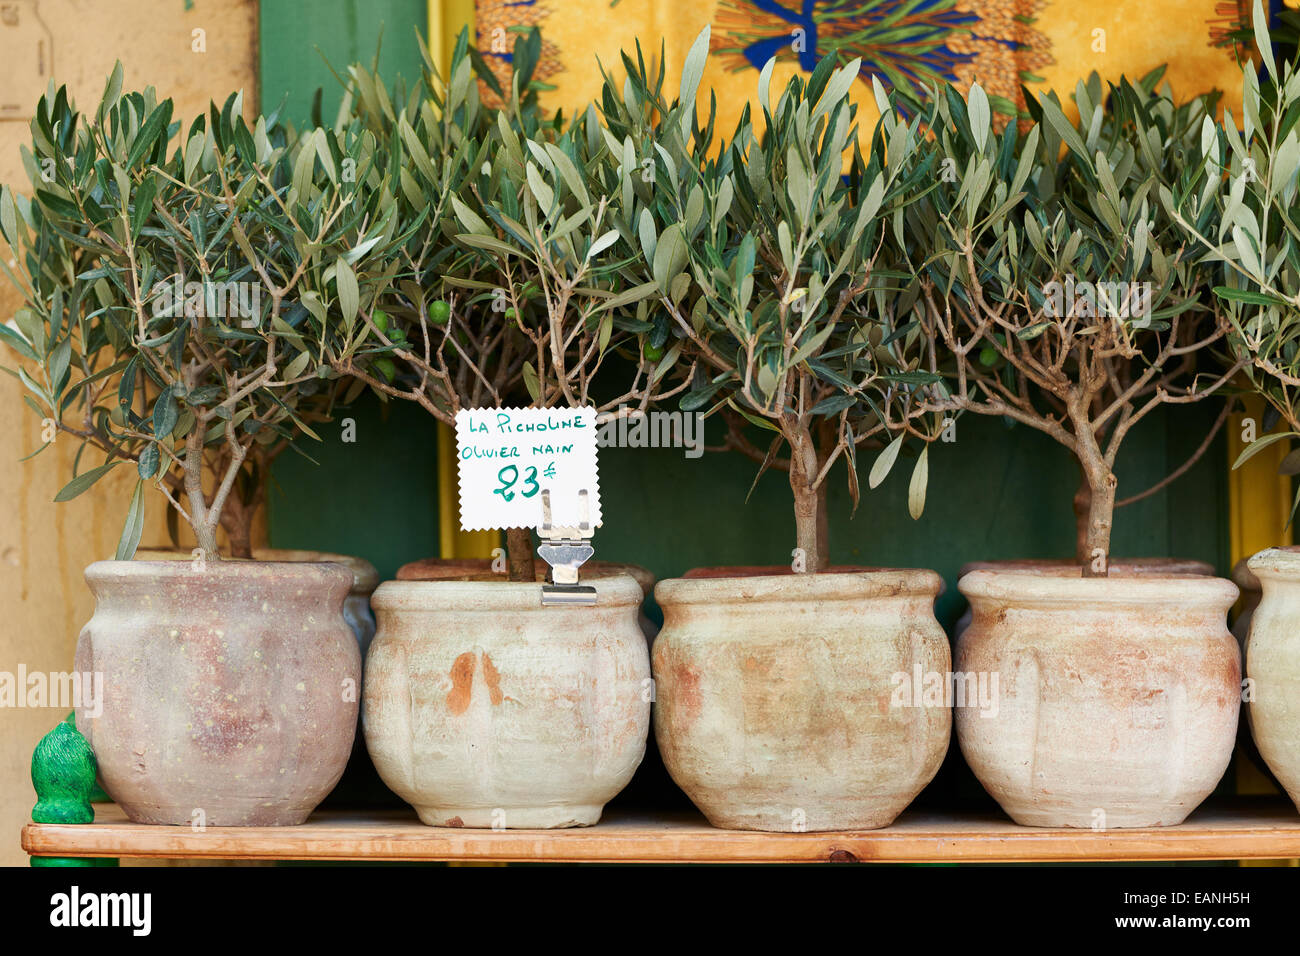 Plant Pot Sale Small Olive Trees In Pots Bonsai Plants For Sale In